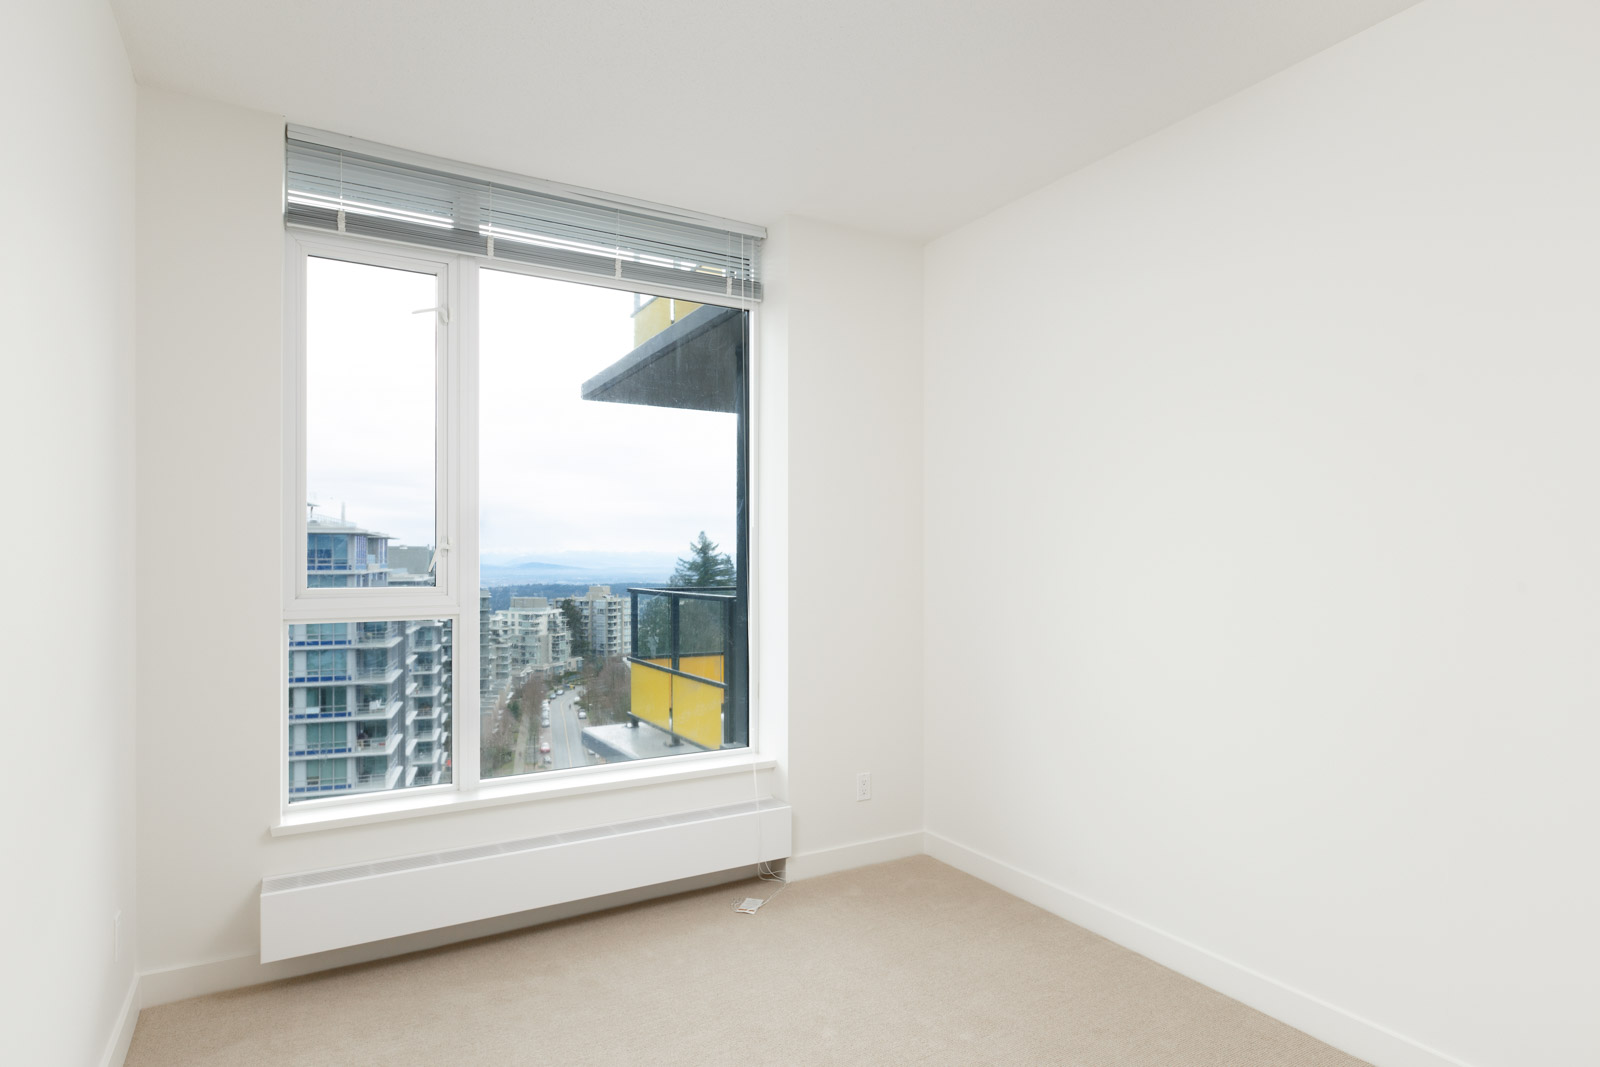 Bedroom with view at Burnaby Mountain condo rental managed by Birds Nest Properties.